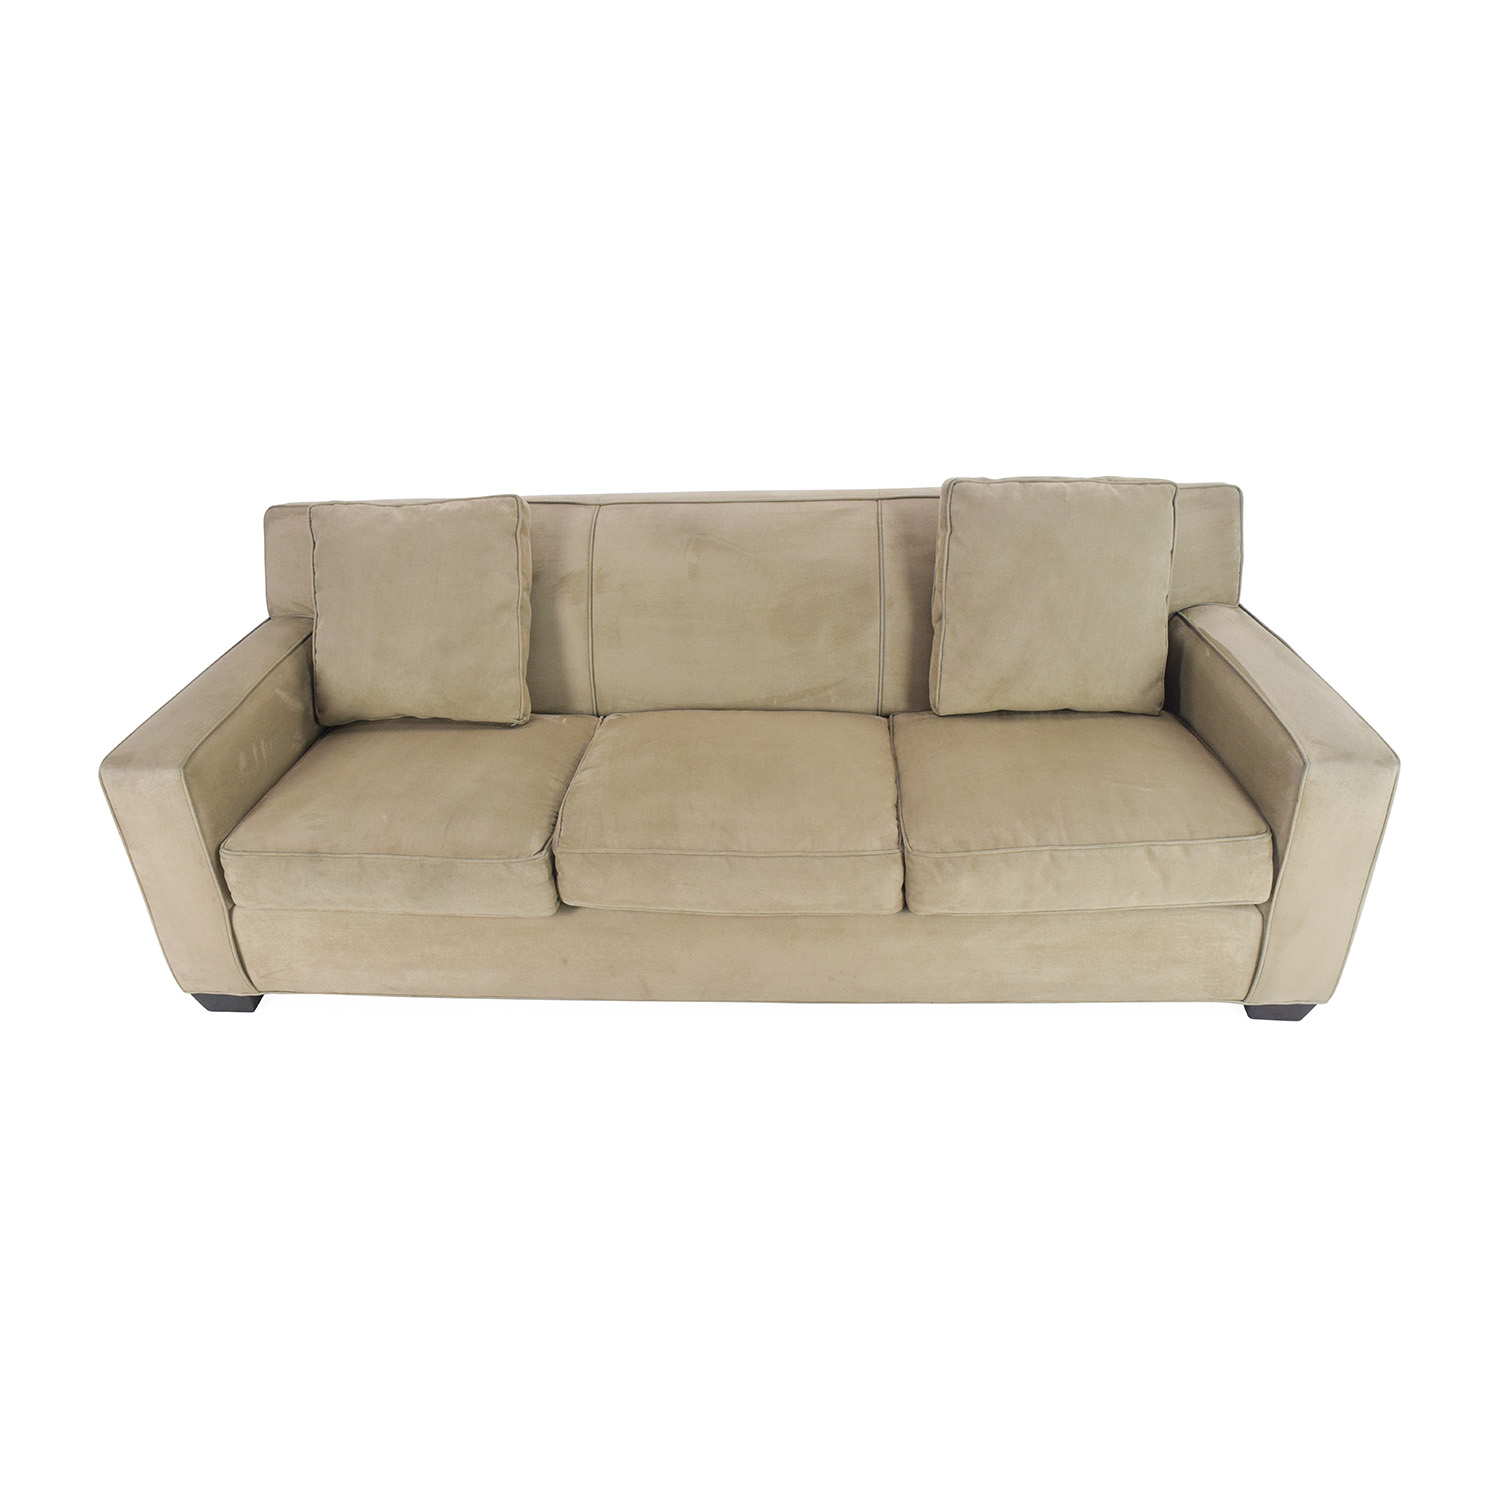 78% OFF Crate and Barrel Crate and Barrel Cameron Sofa Sofas